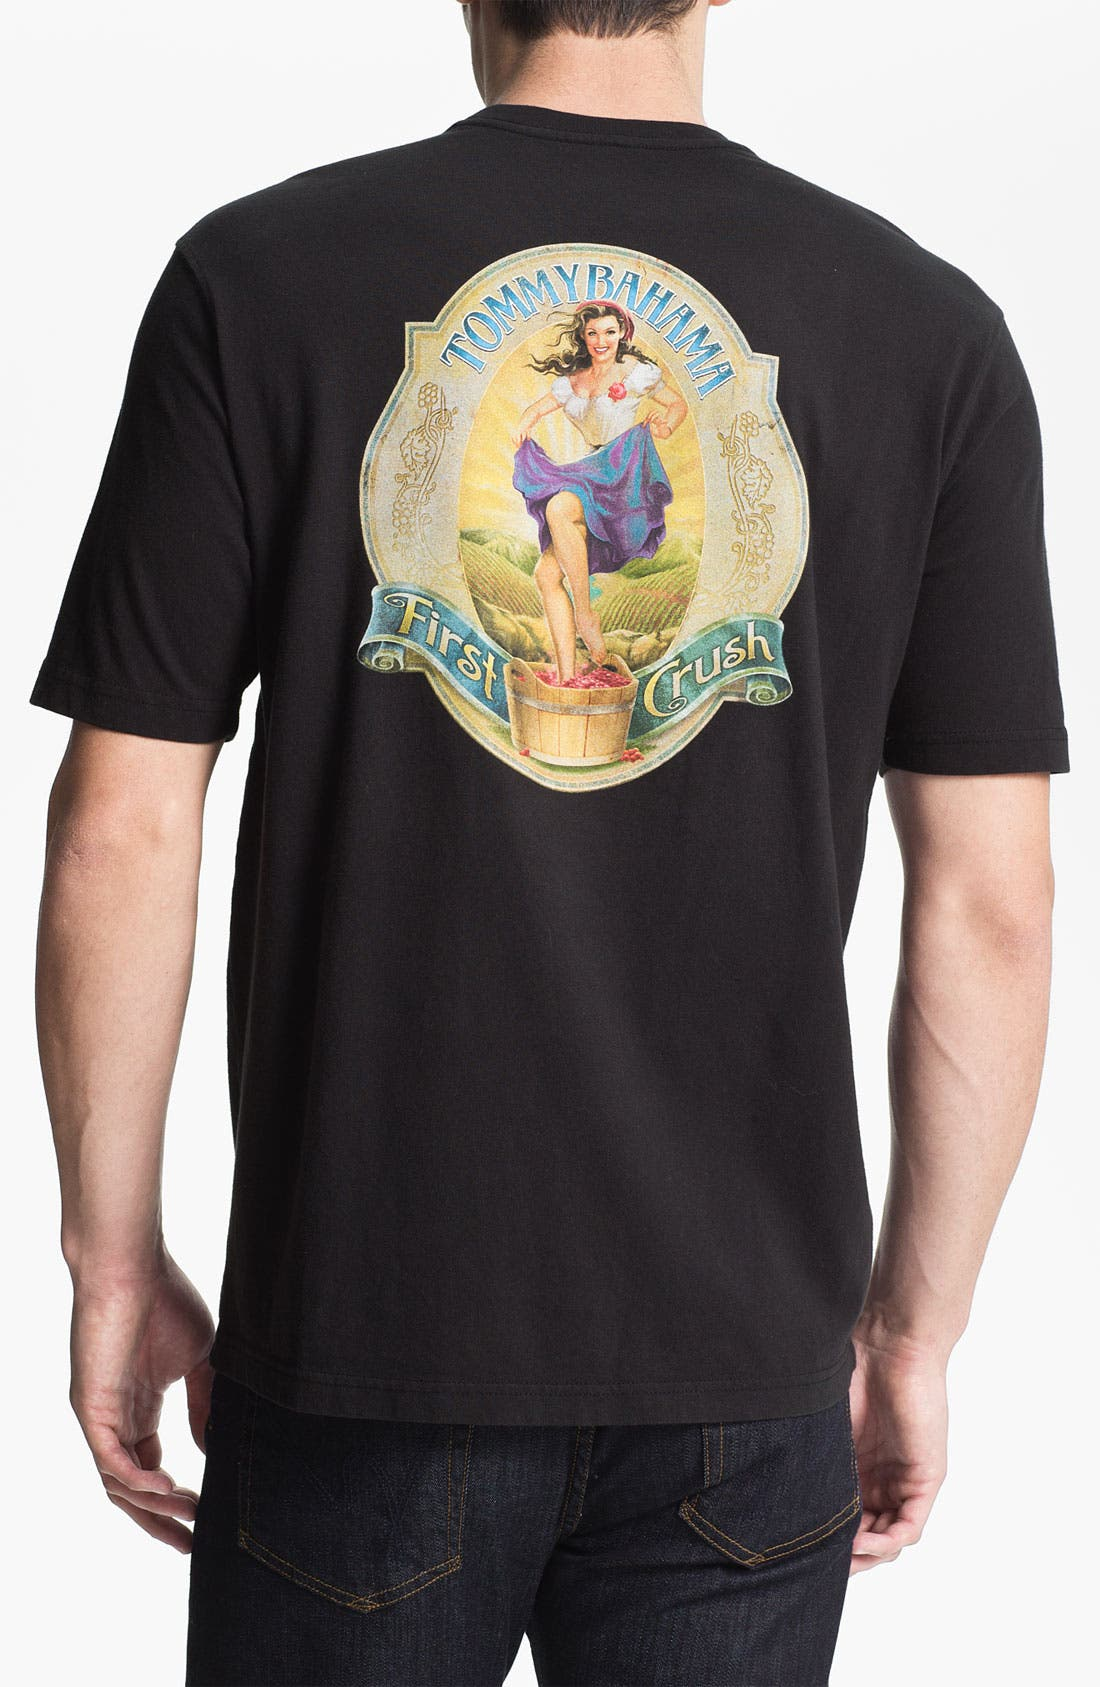 Alternate Image 1 Selected - Tommy Bahama 'First Crush' T-Shirt